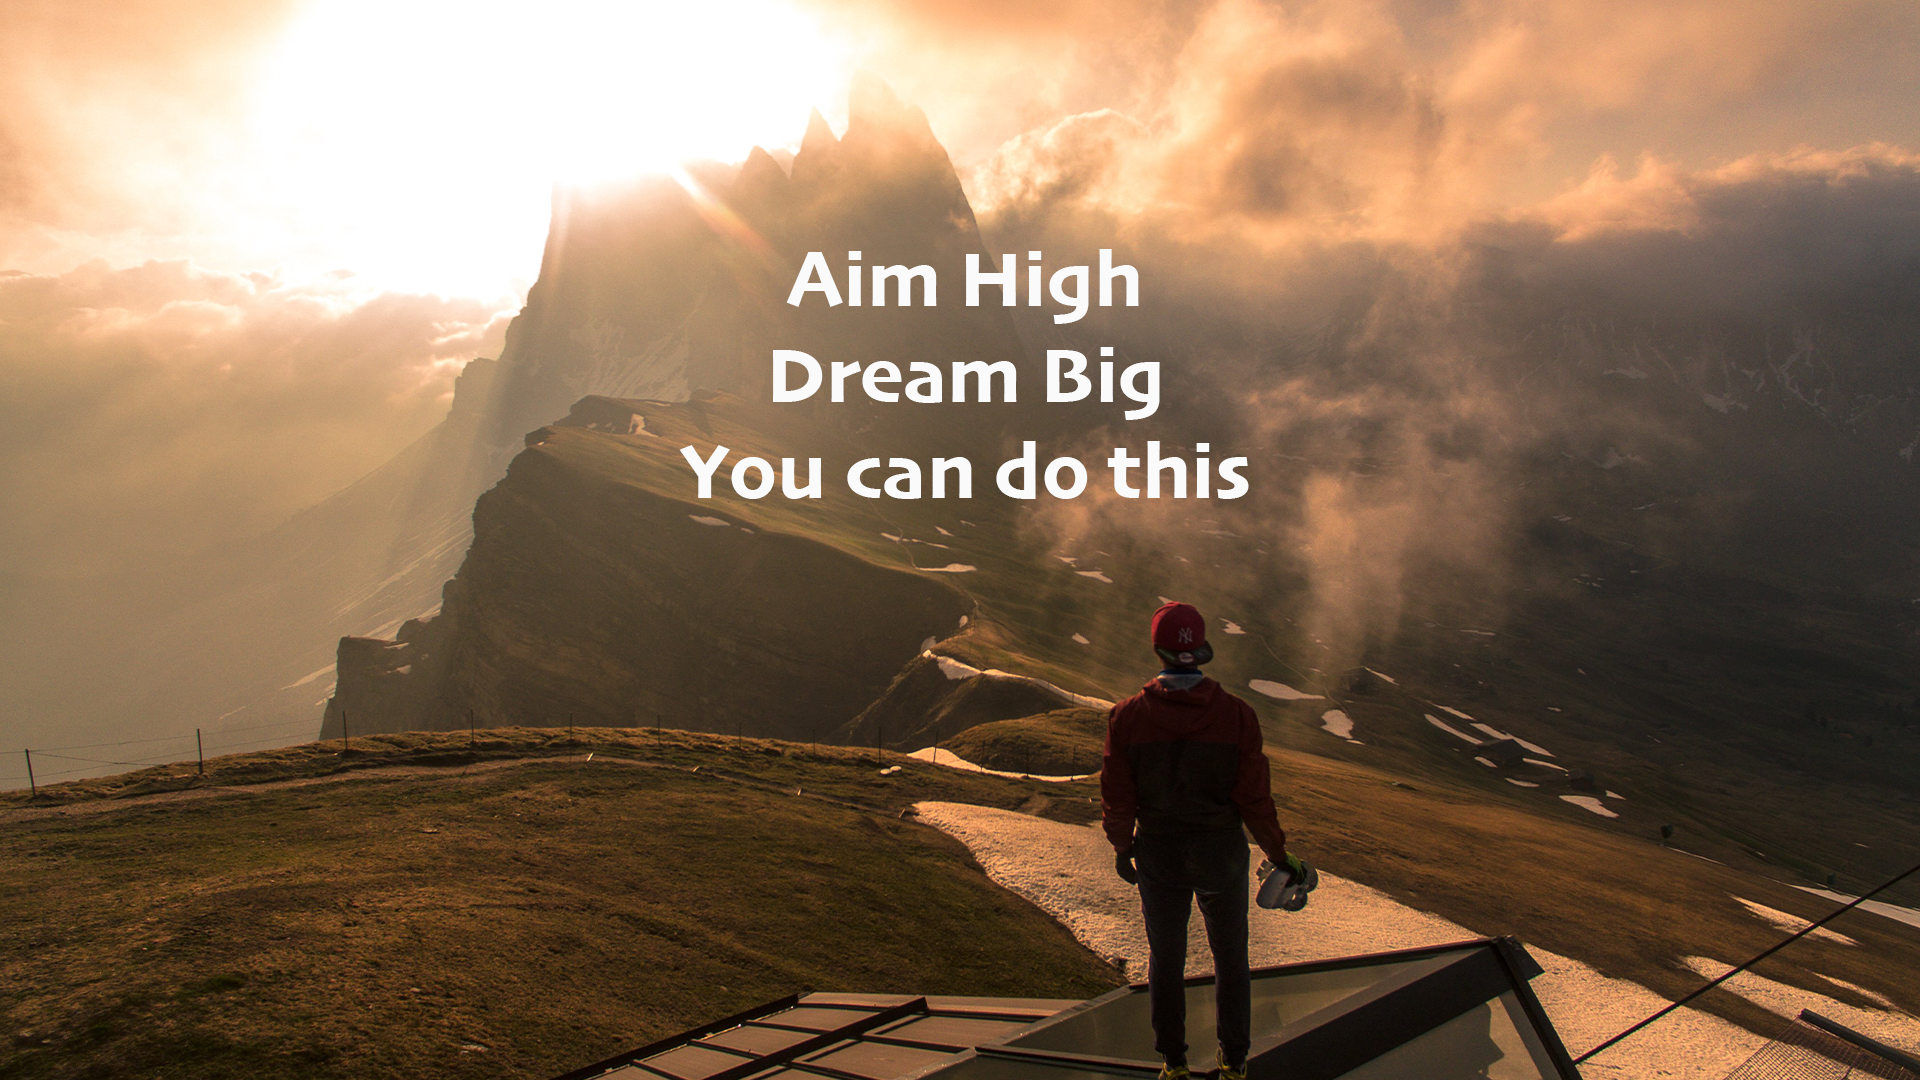 Aim High, Dream Big, You Can Do This